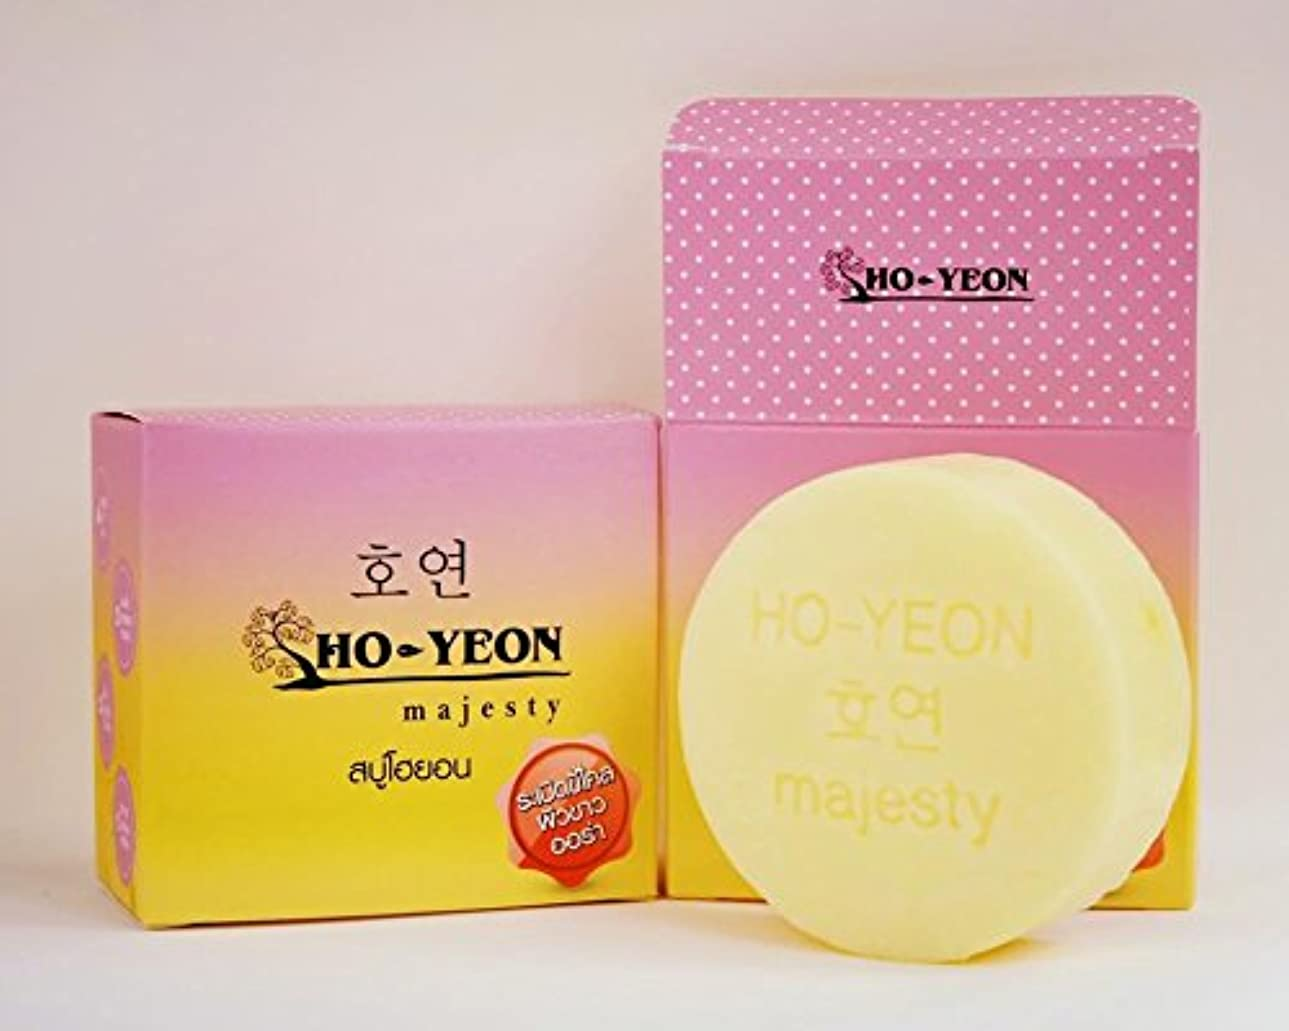 レコーダーキャプテンブライ絞る1 X Natural Herbal Whitening Soap. Soap Yeon Ho-yeon the HO (80 grams) Free shipping